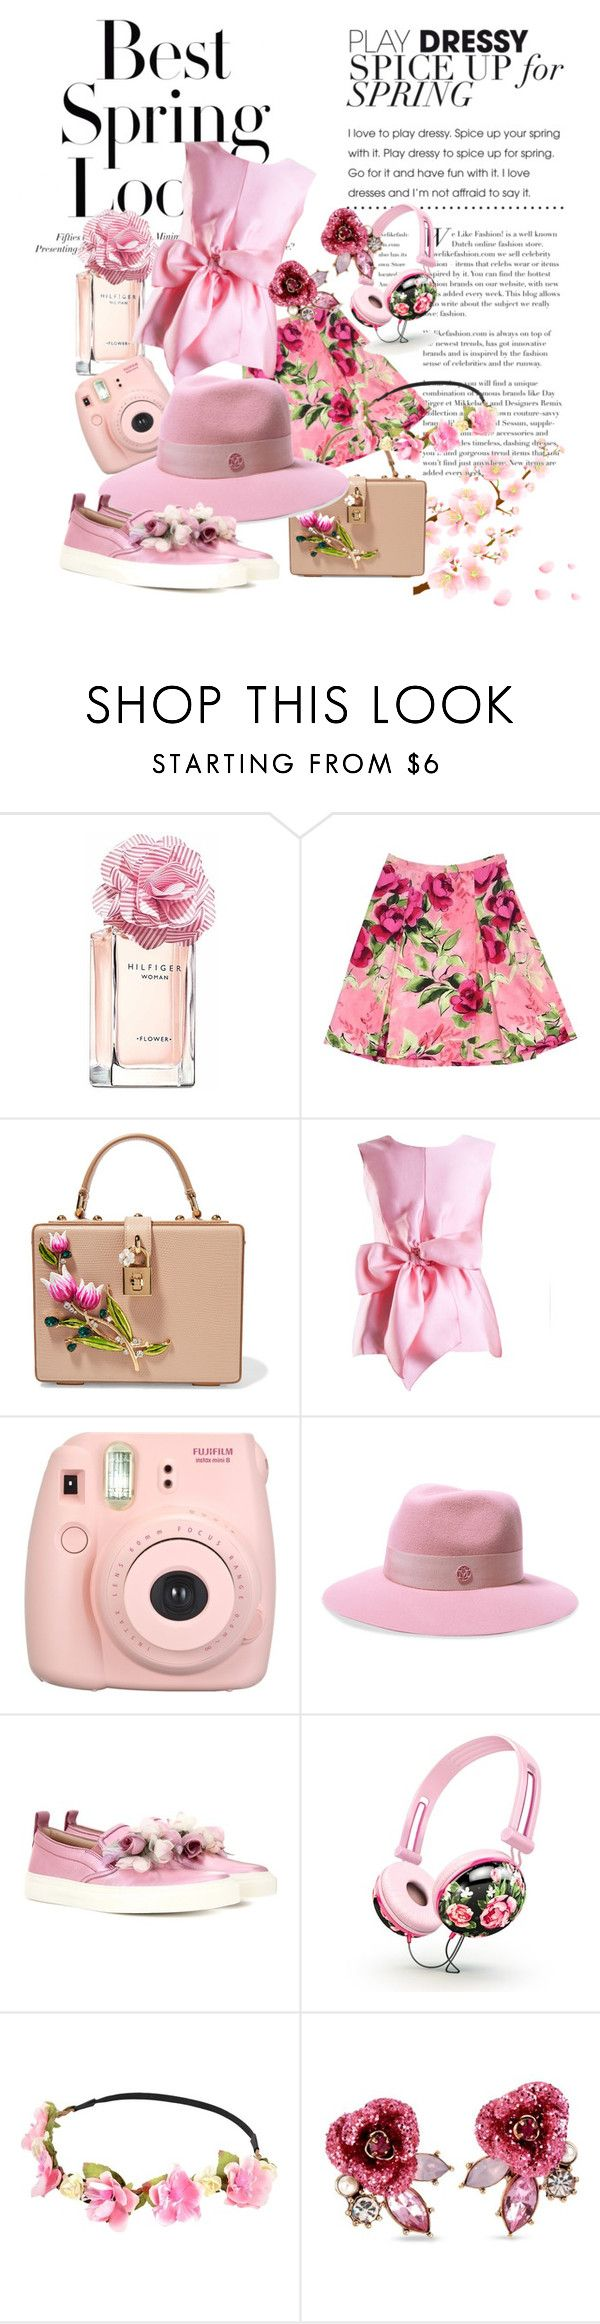 """""""spring fashion"""" by anya2991 on Polyvore featuring H&M, Tommy Hilfiger, Love Moschino, Dolce&Gabbana, Yanny London, Fujifilm, Maison Michel, Gucci and Betsey Johnson"""